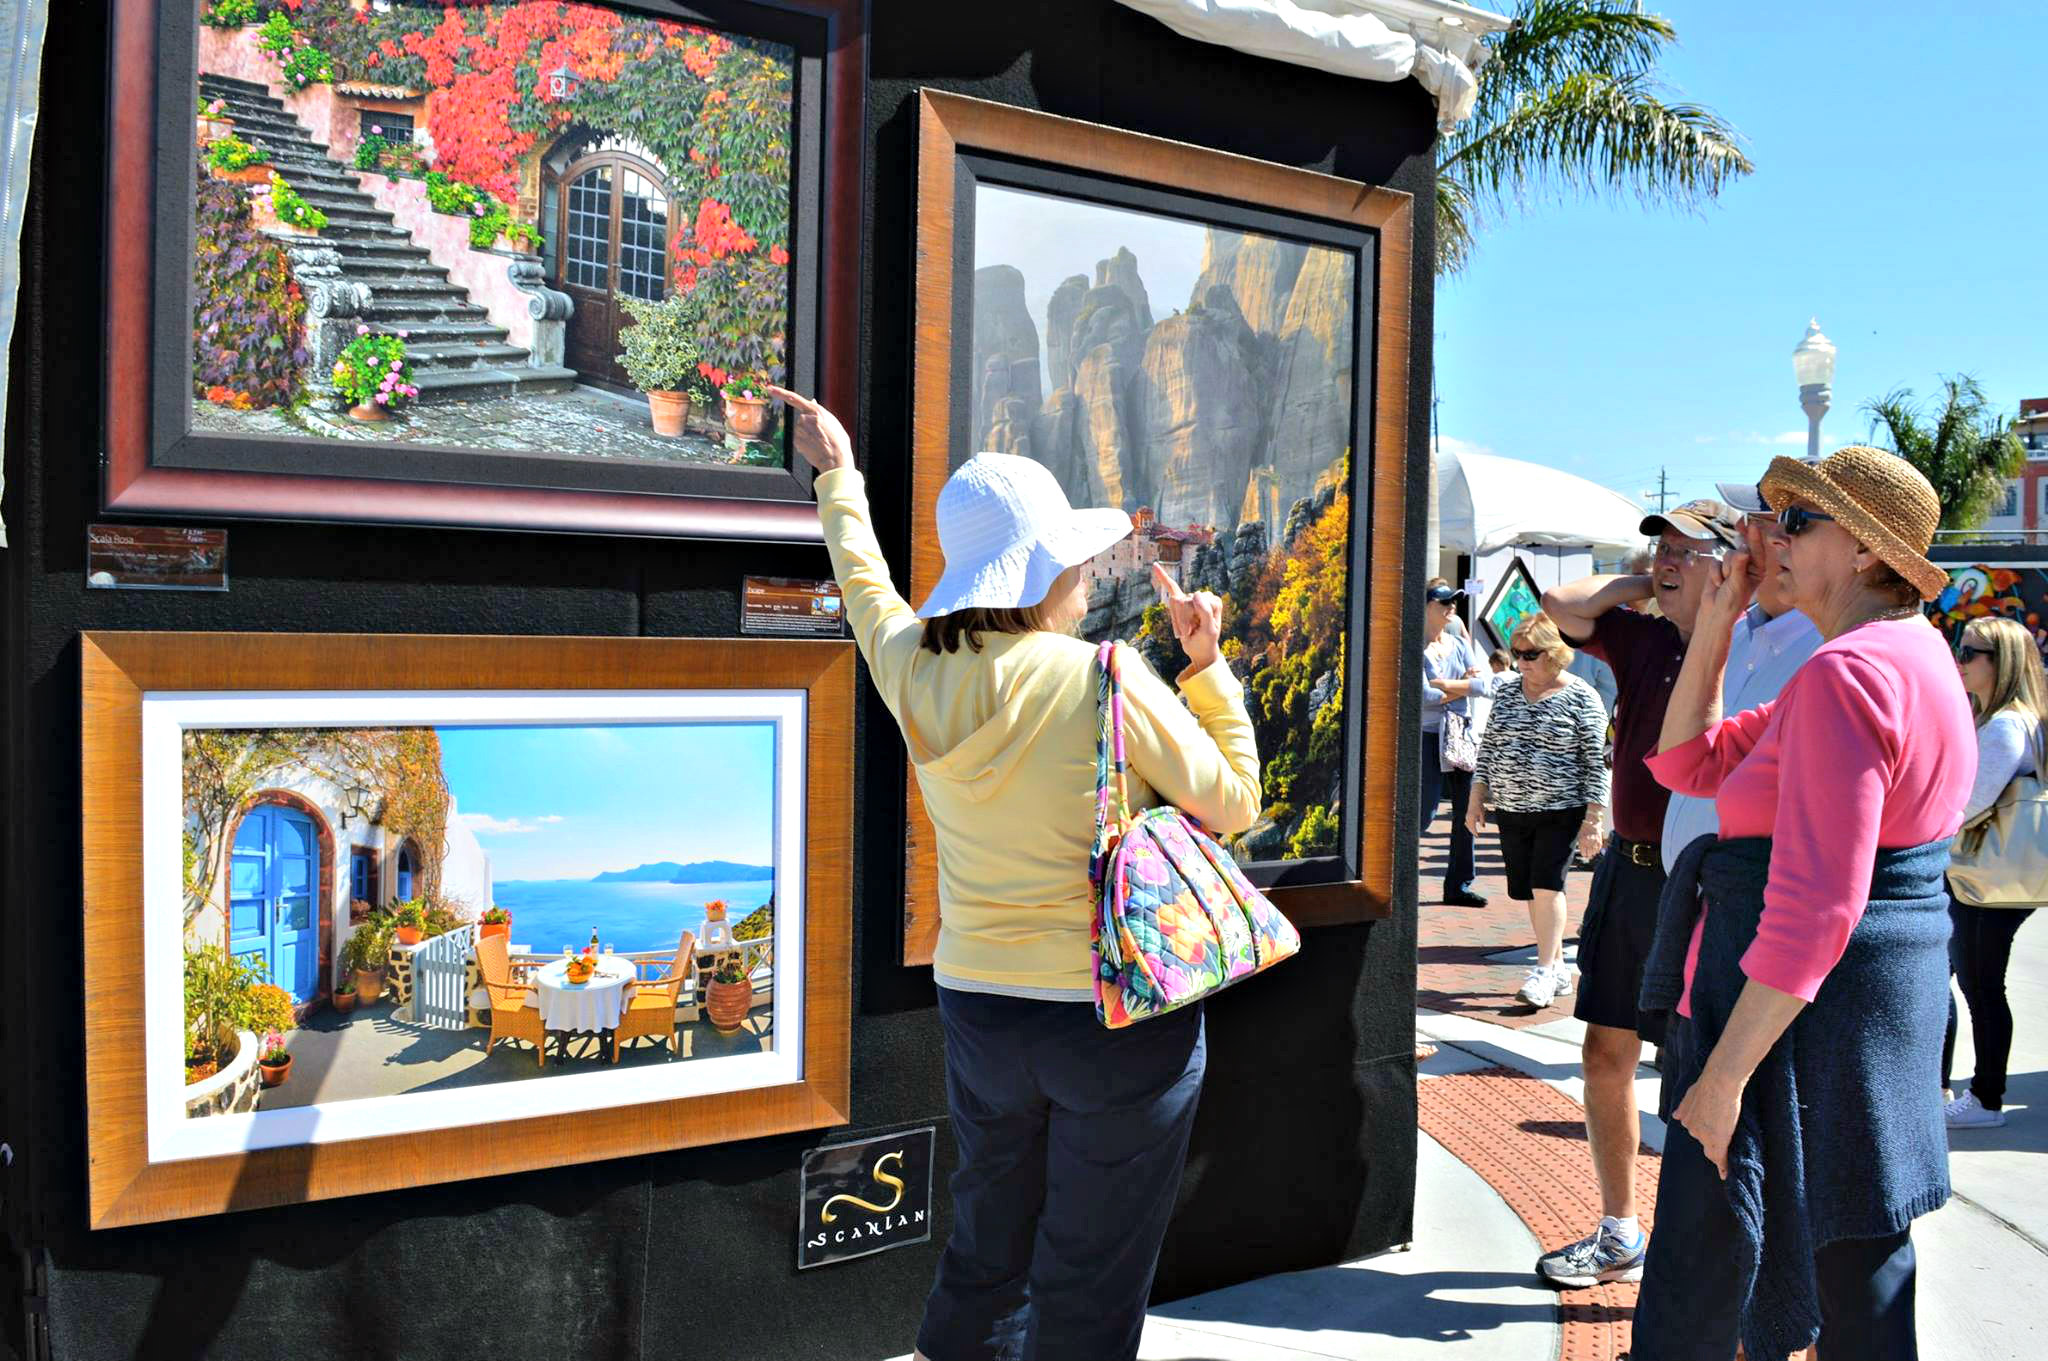 A pair of women shoppers survey an outdoor art display during ArtFest Fort Myers.